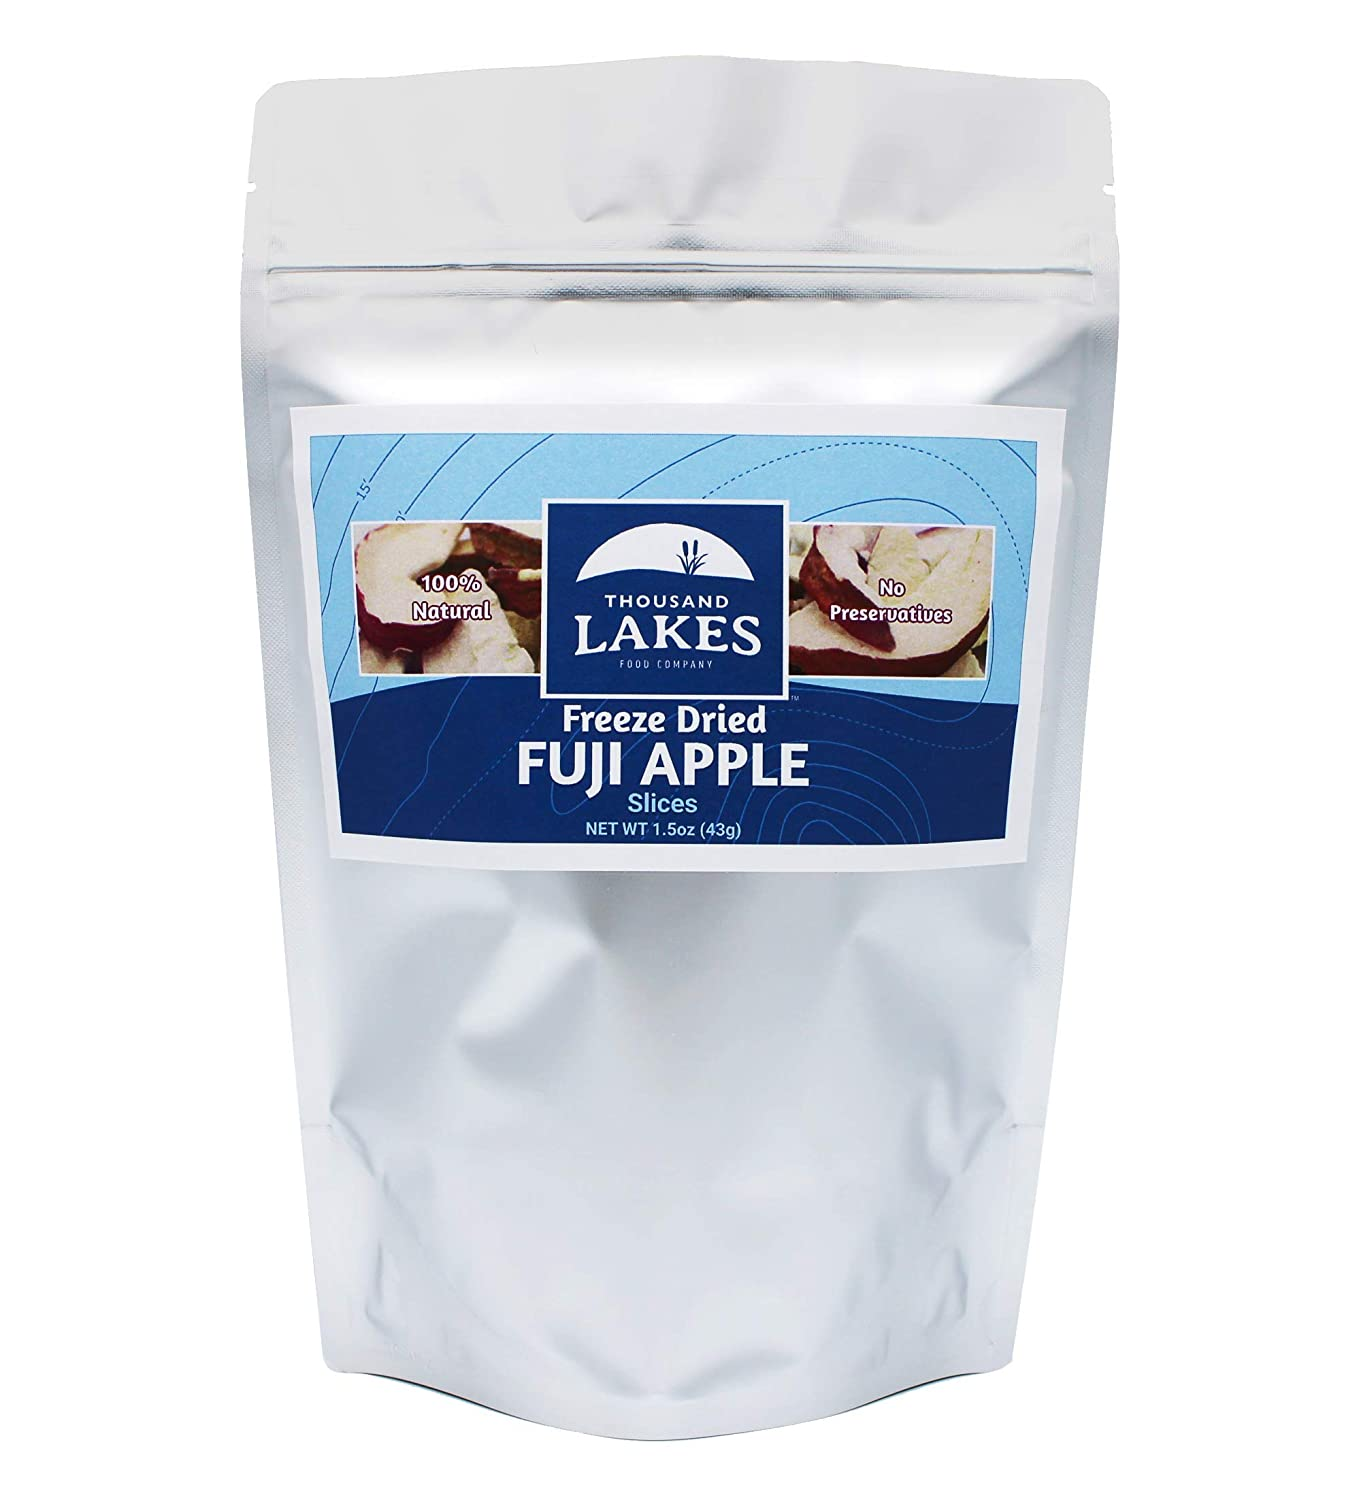 Thousand Lakes Freeze Dried Fruits and Vegetables - Fuji Apples 1.5 ounces | No Sugar Added | 100% Sliced Apples with Peel